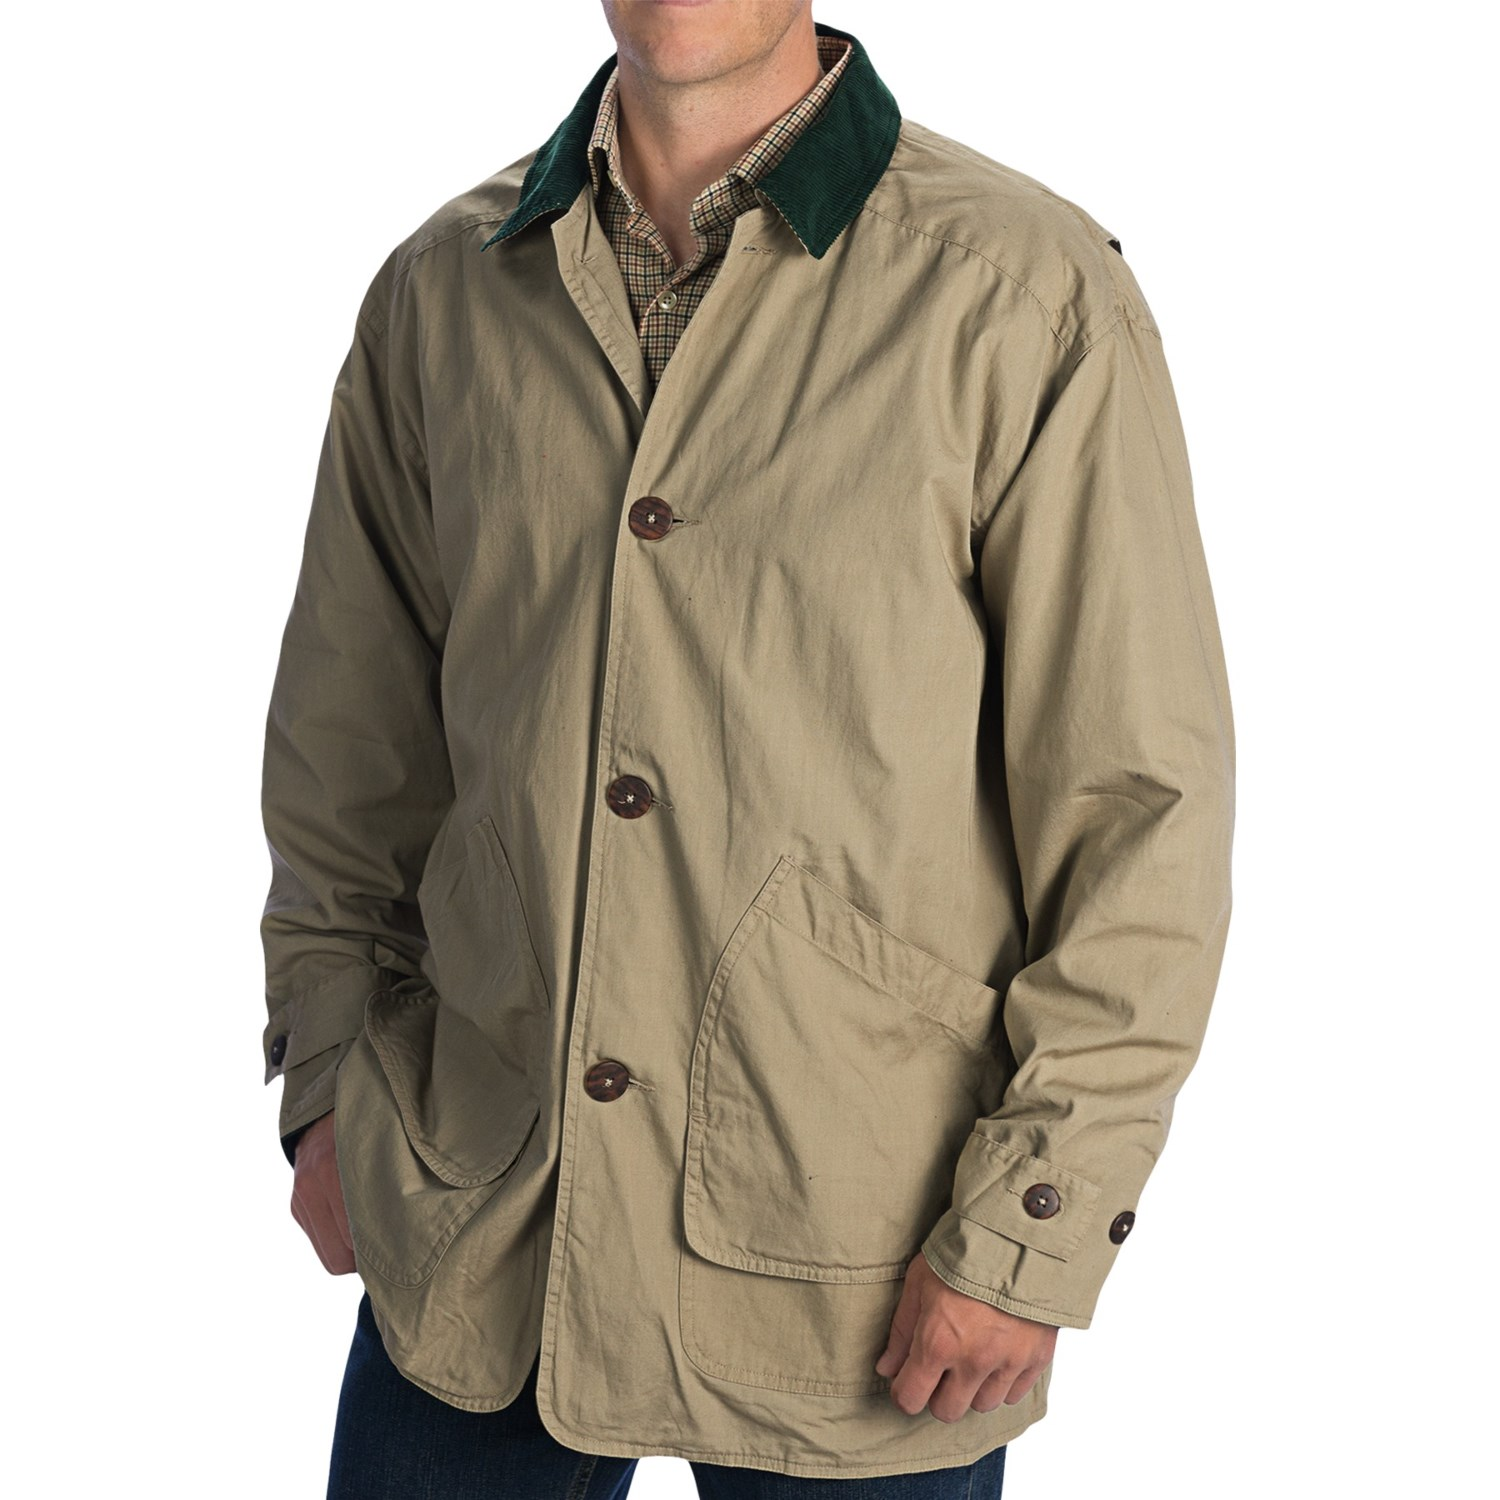 Stay warm & dry with shopnow-vjpmehag.cf's wide variety of outerwear. Shop jackets, vests & more at great low prices today!